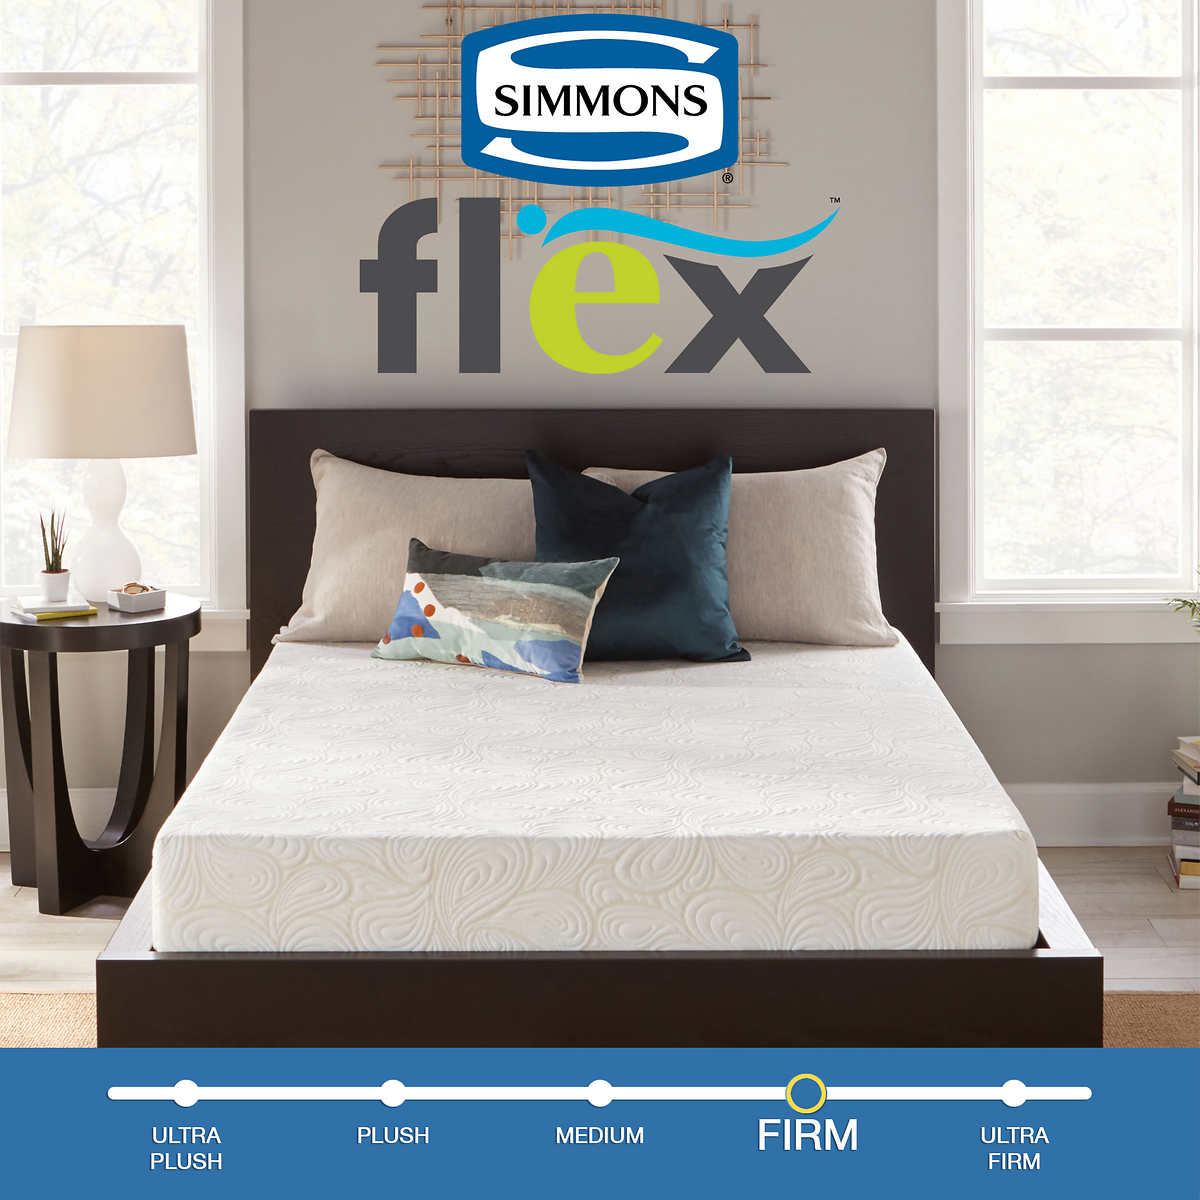 "Simmons Flex 7.25"" Twin Gel Memory Foam Mattress"